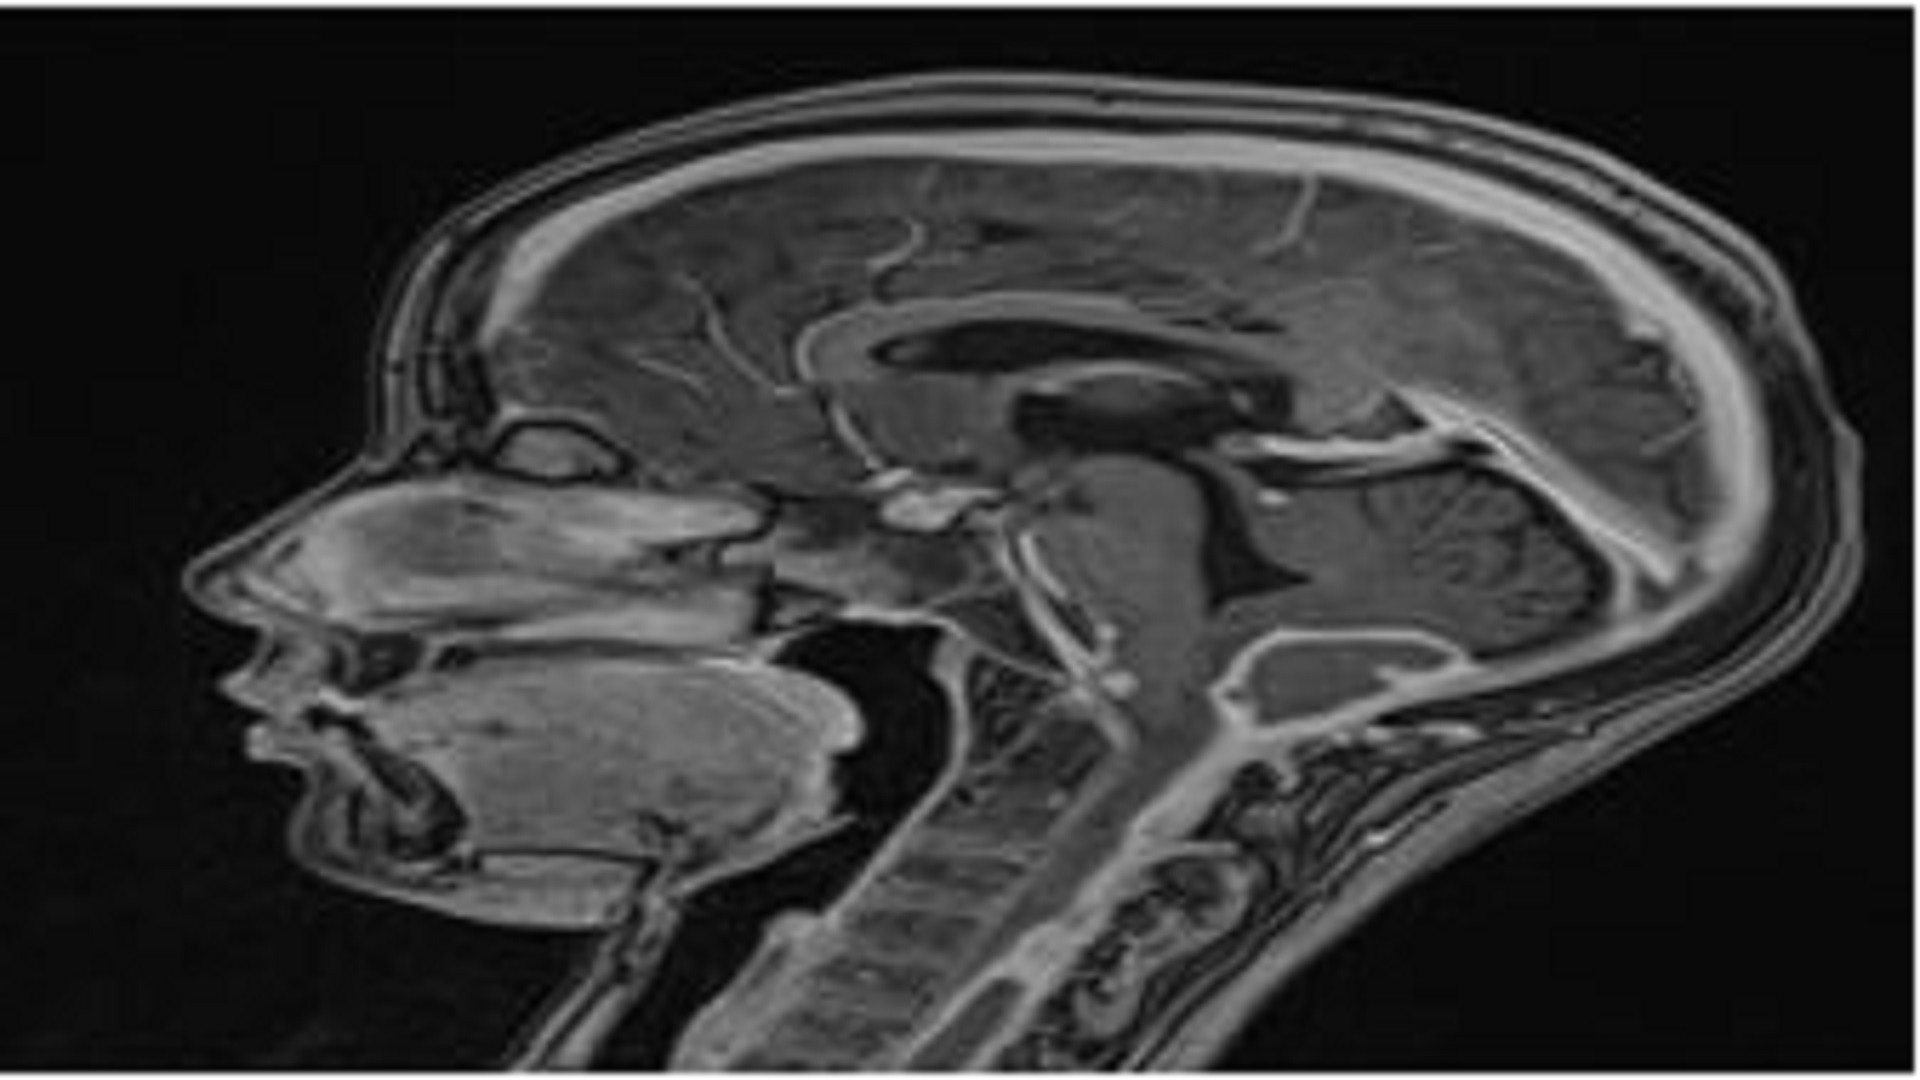 Epidural Tuberculous Abscess of the Posterior Cerebellar Fossa Extending To the Cervical Spine: An Unusual Form of Central Nervous System Tuberculosis in Children